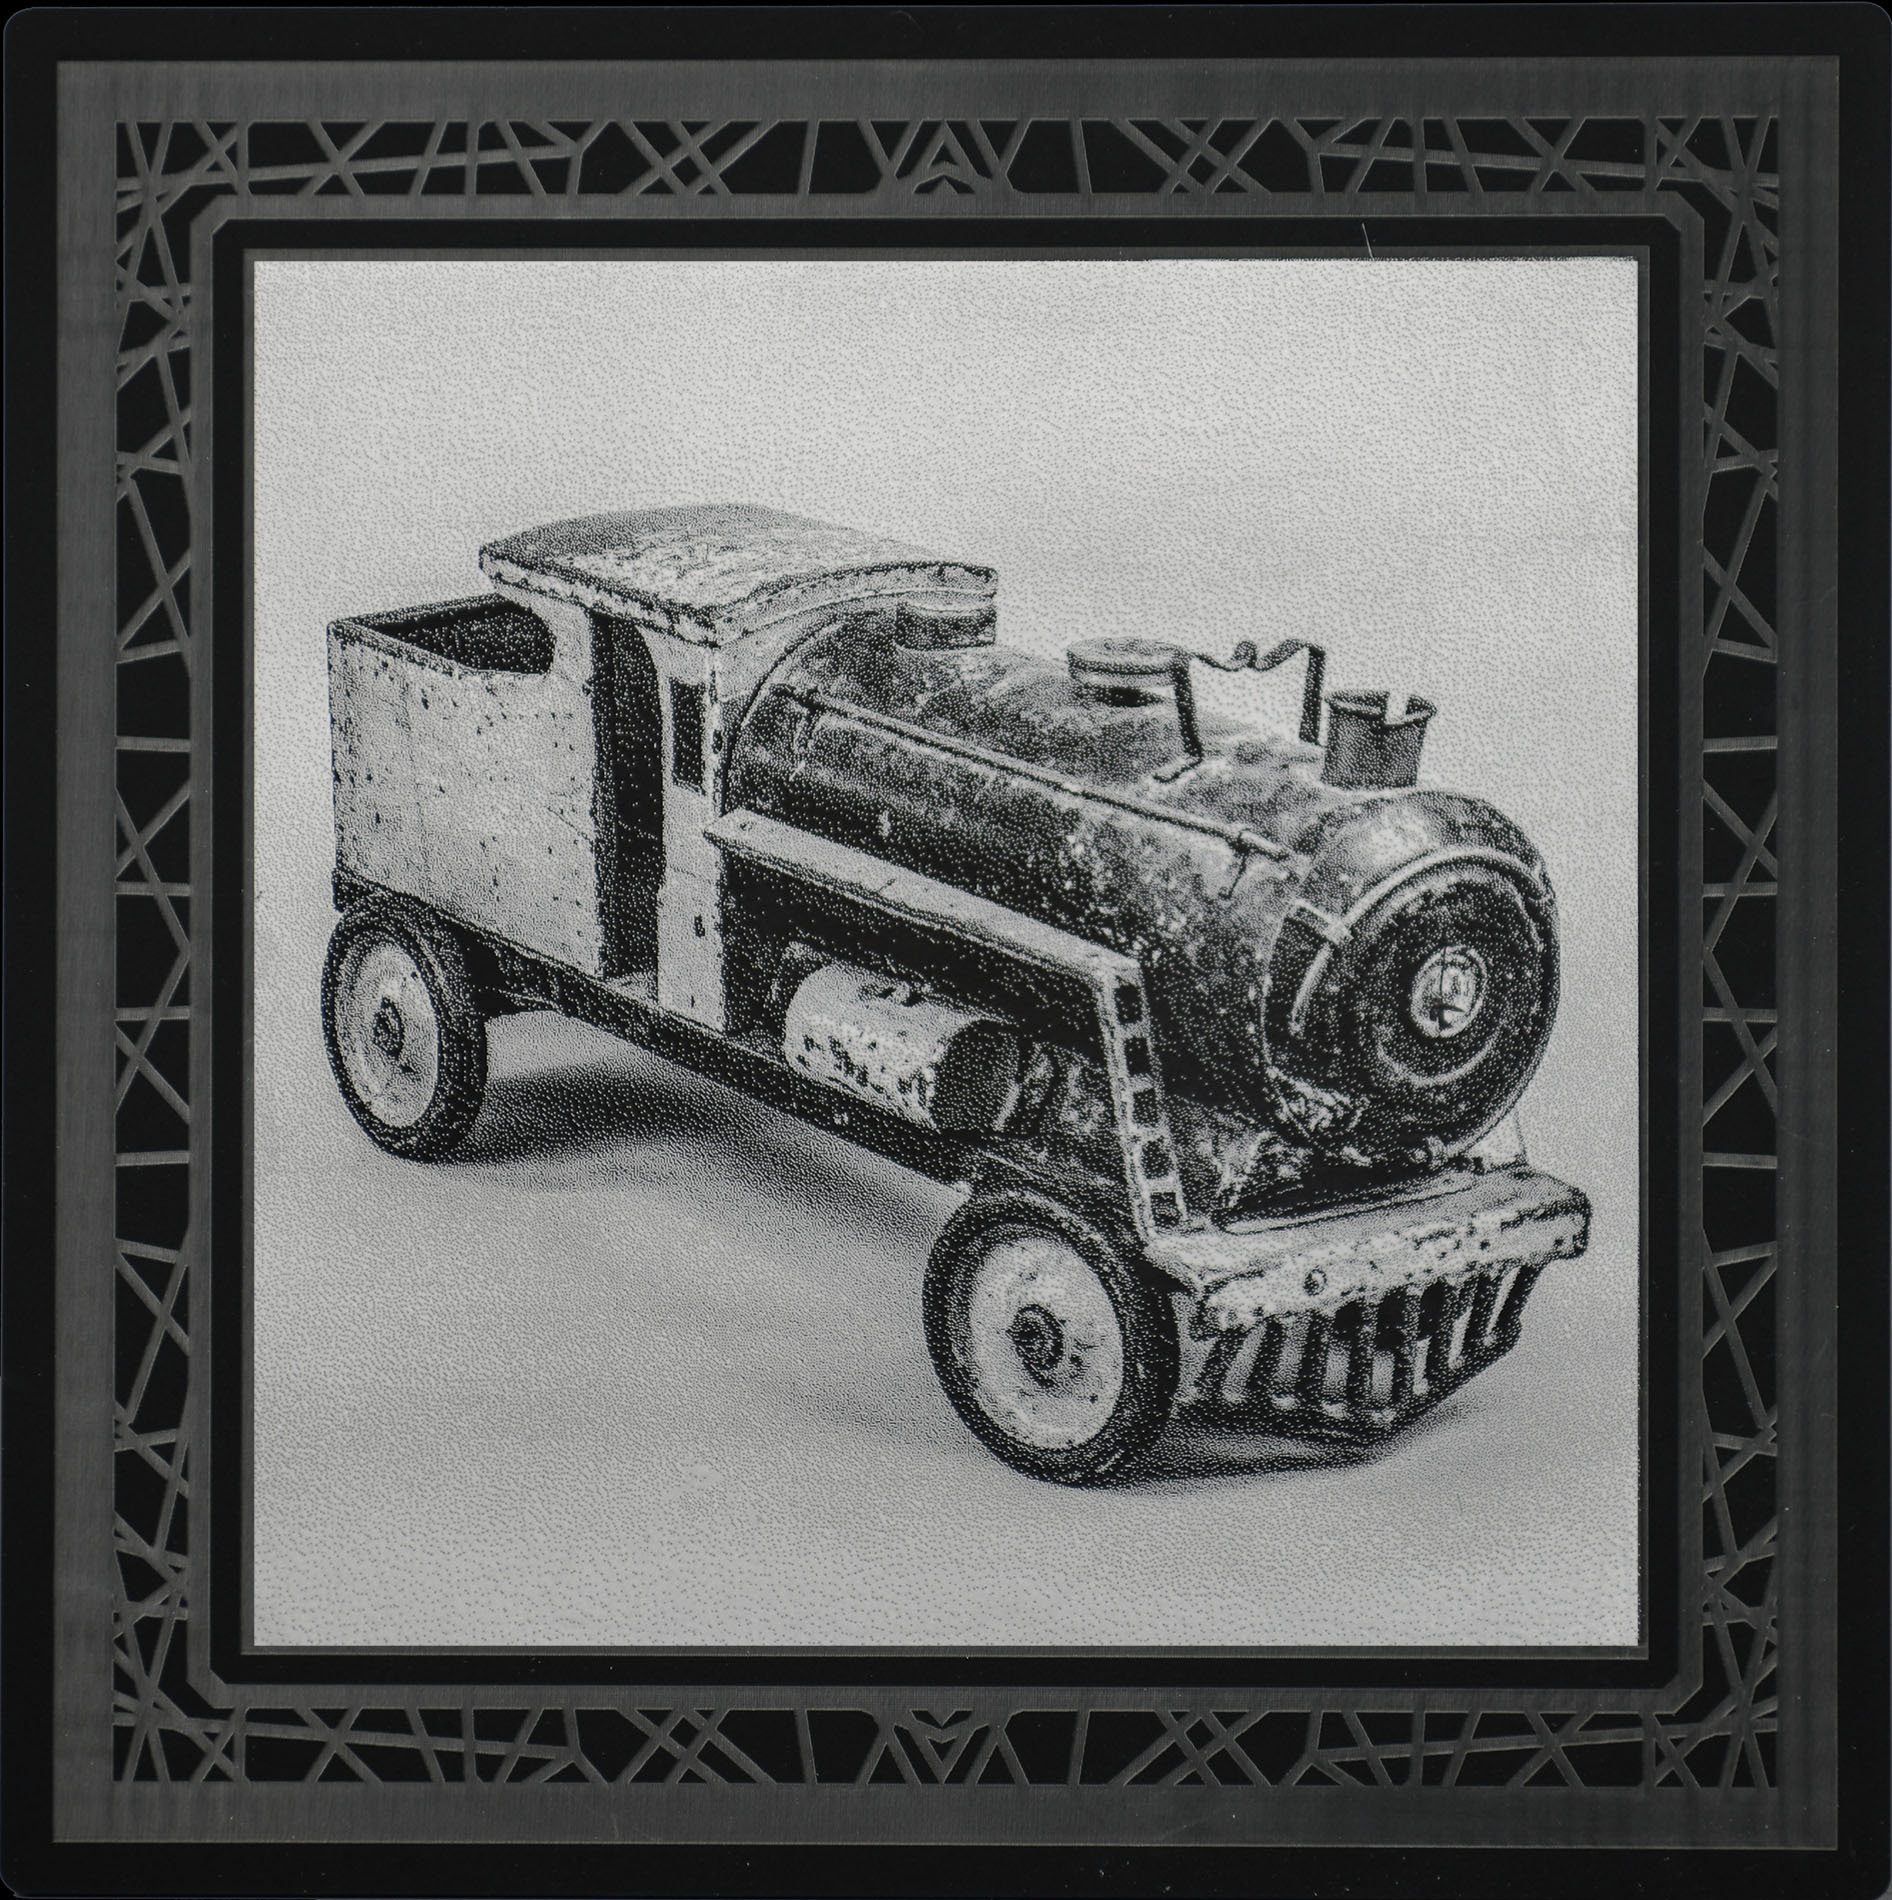 Red Train  8 x 8  caustigram mounted on laser engraved acrylic